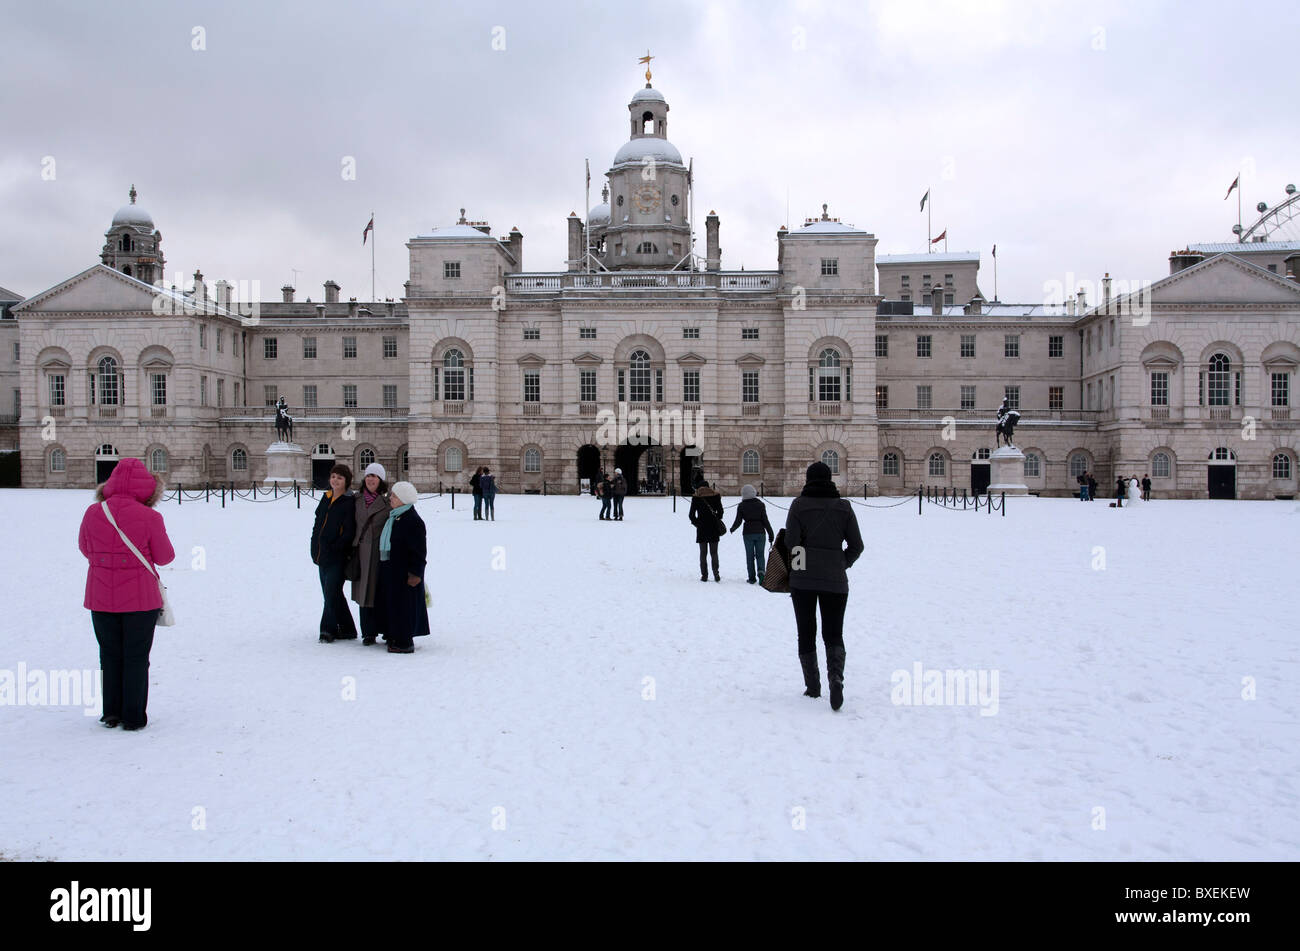 Horse Guards Parade - London - Stock Image